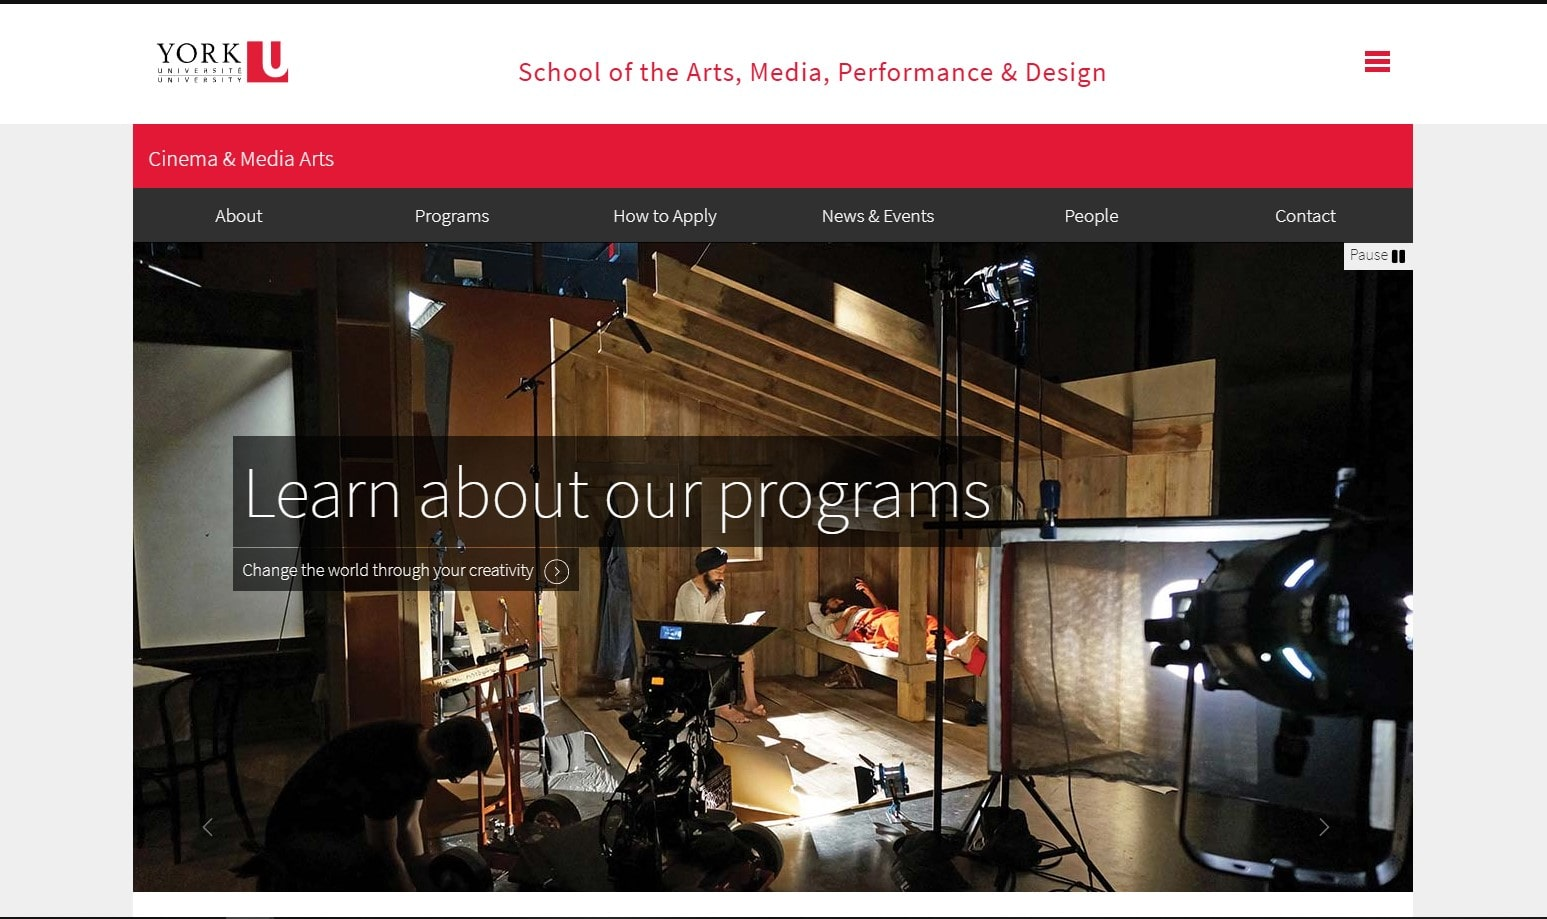 York University - School of the Arts, Media, Performance, & Design